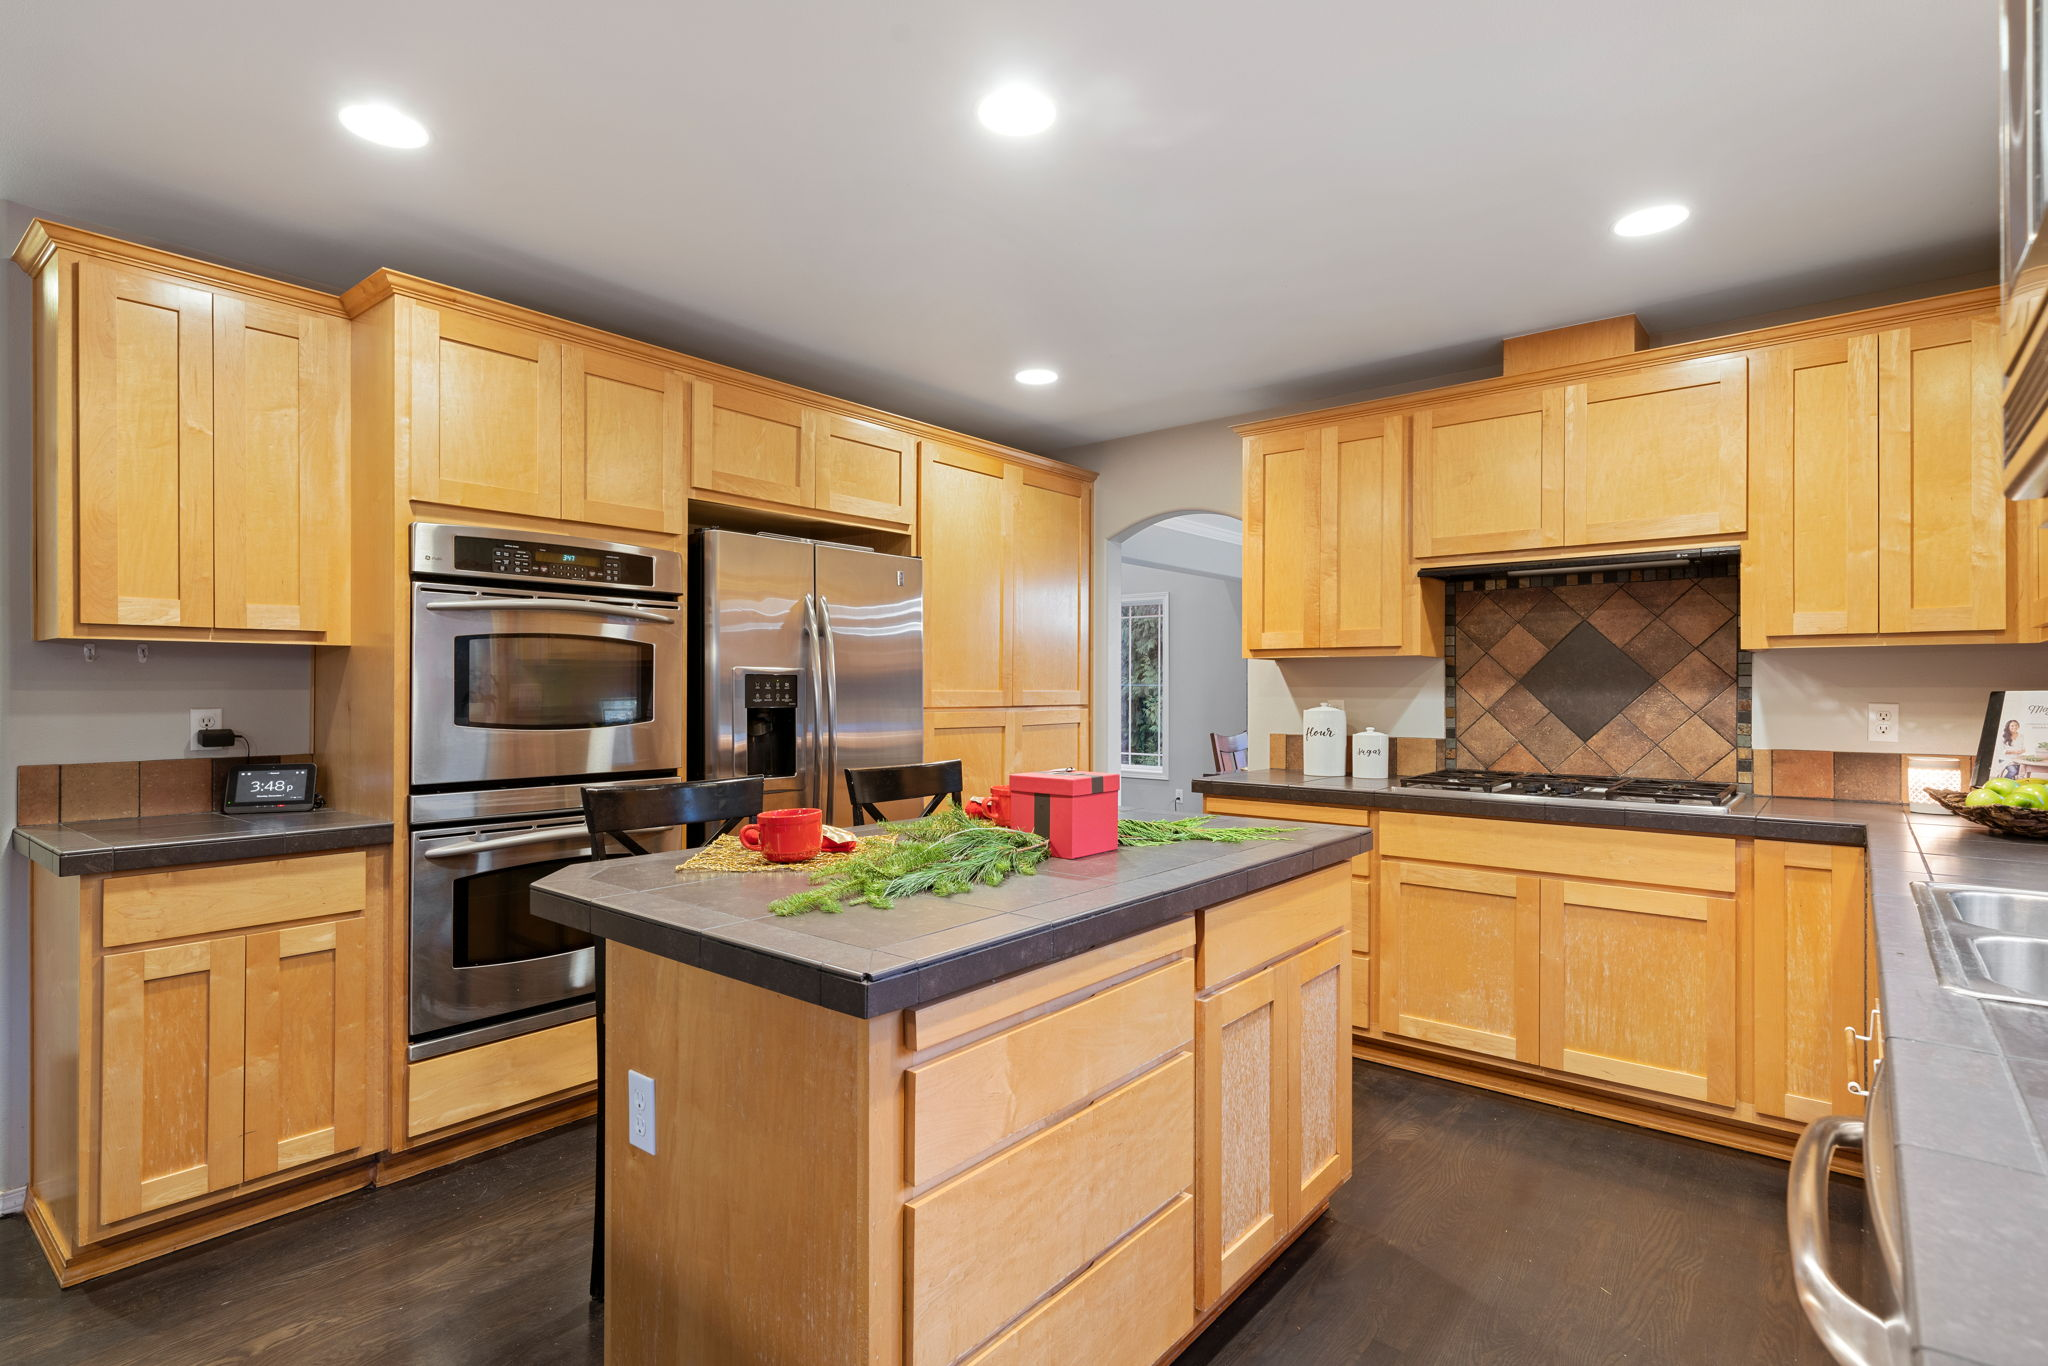 Lots of counter space and cabinets!